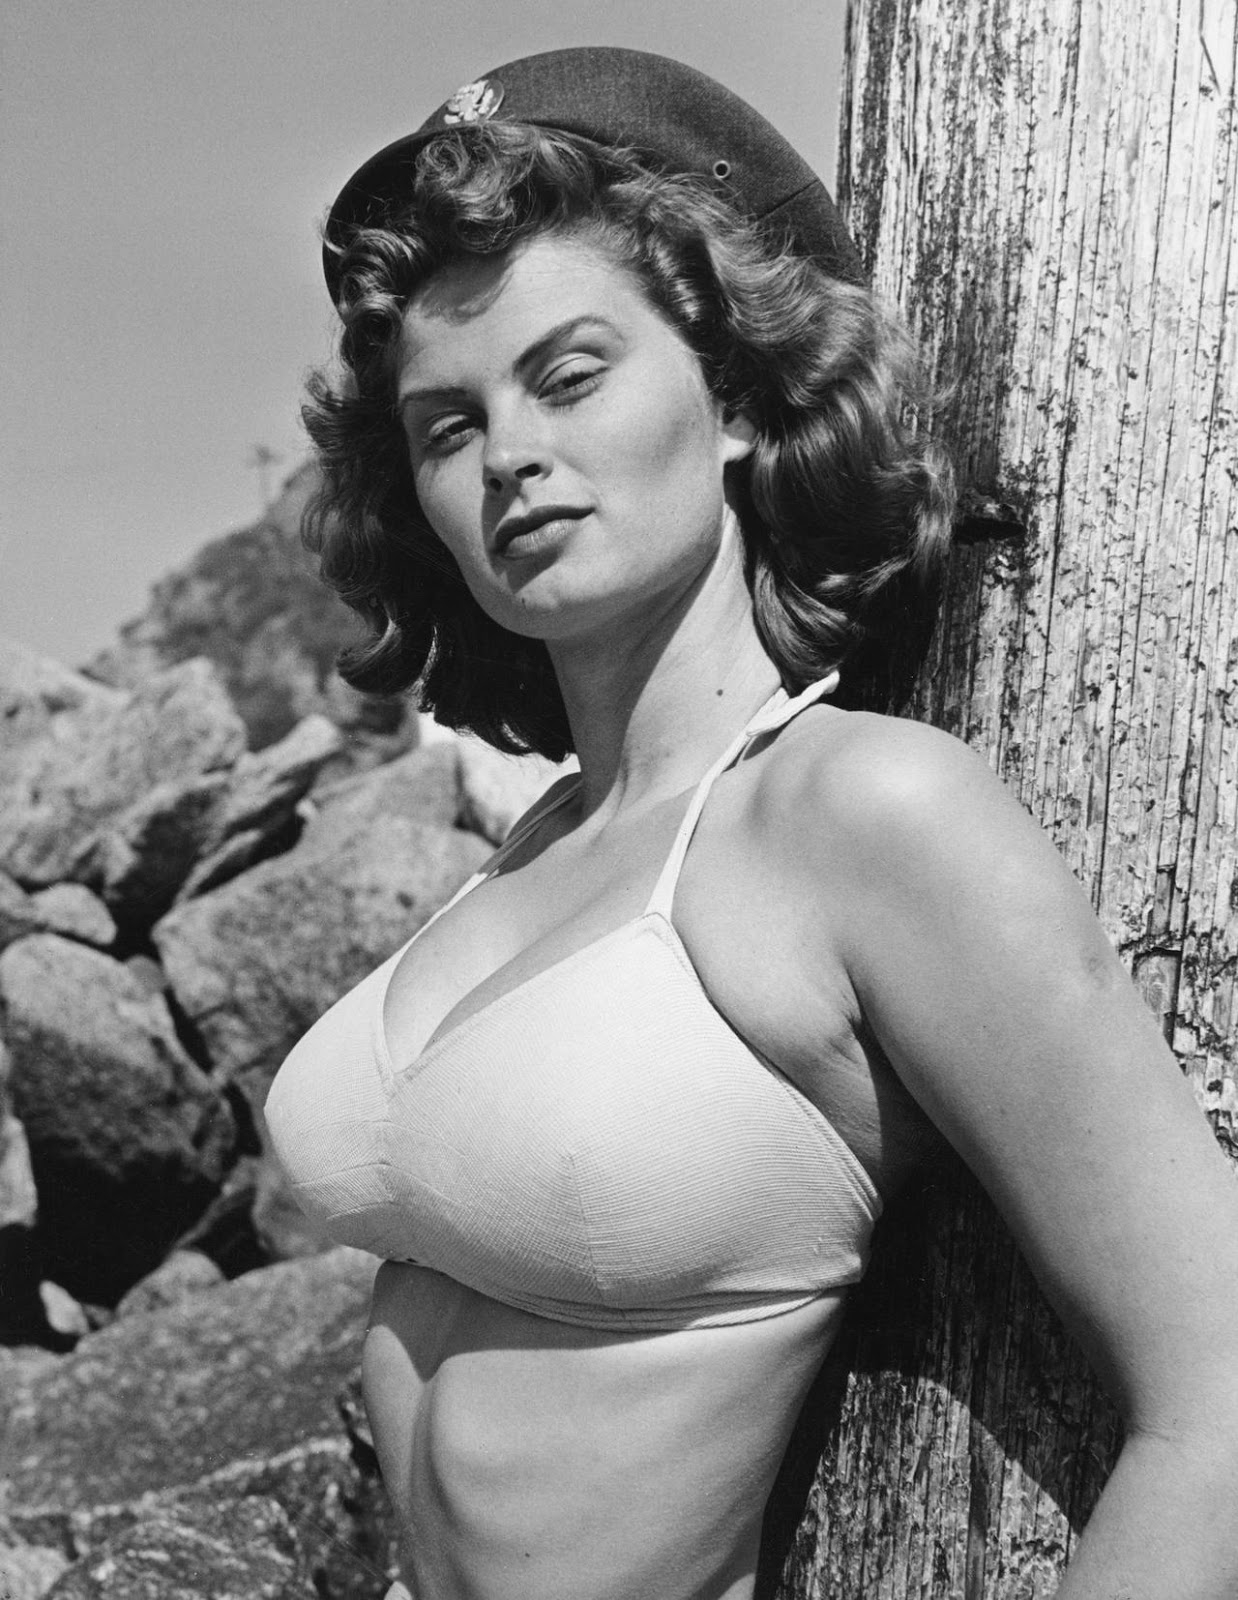 Best tits actress 1950